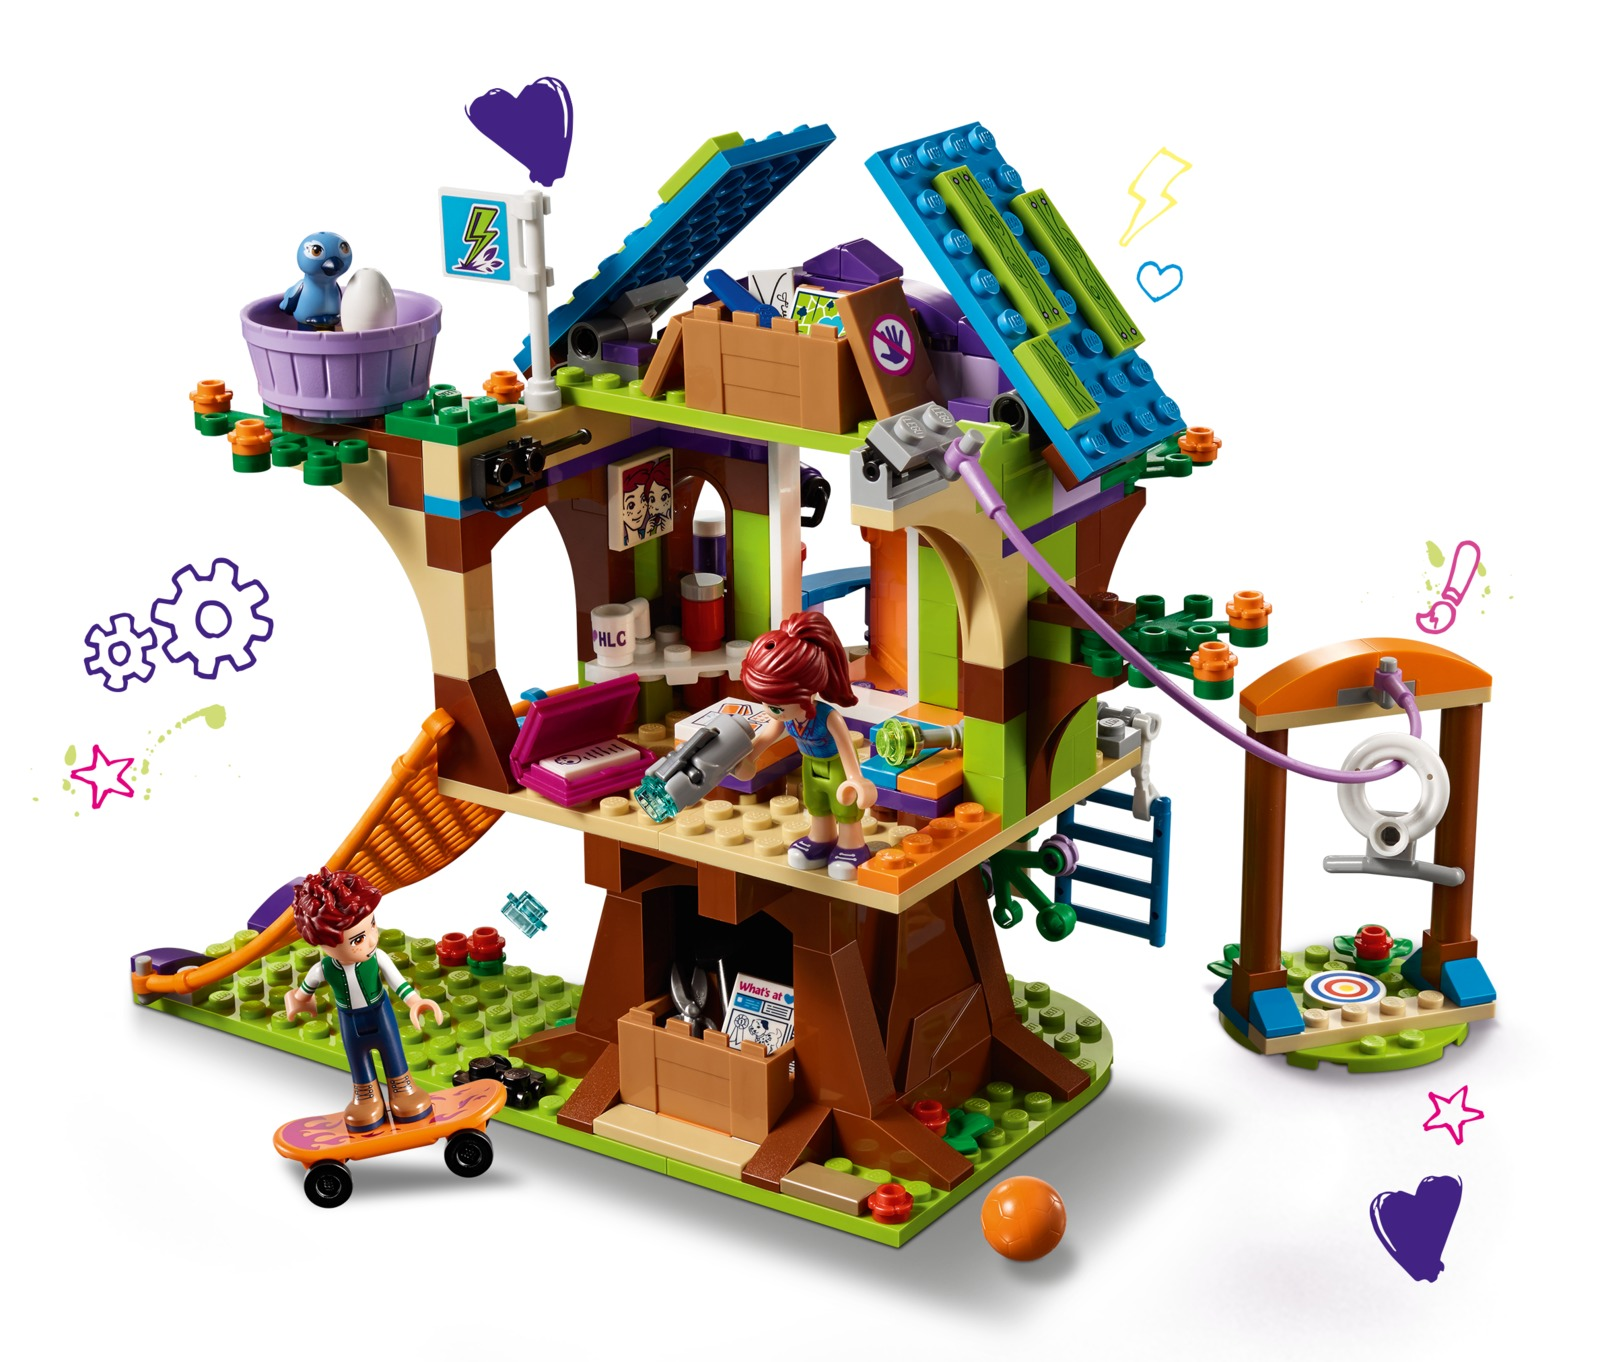 LEGO Friends: Mia's Tree House (41335) image